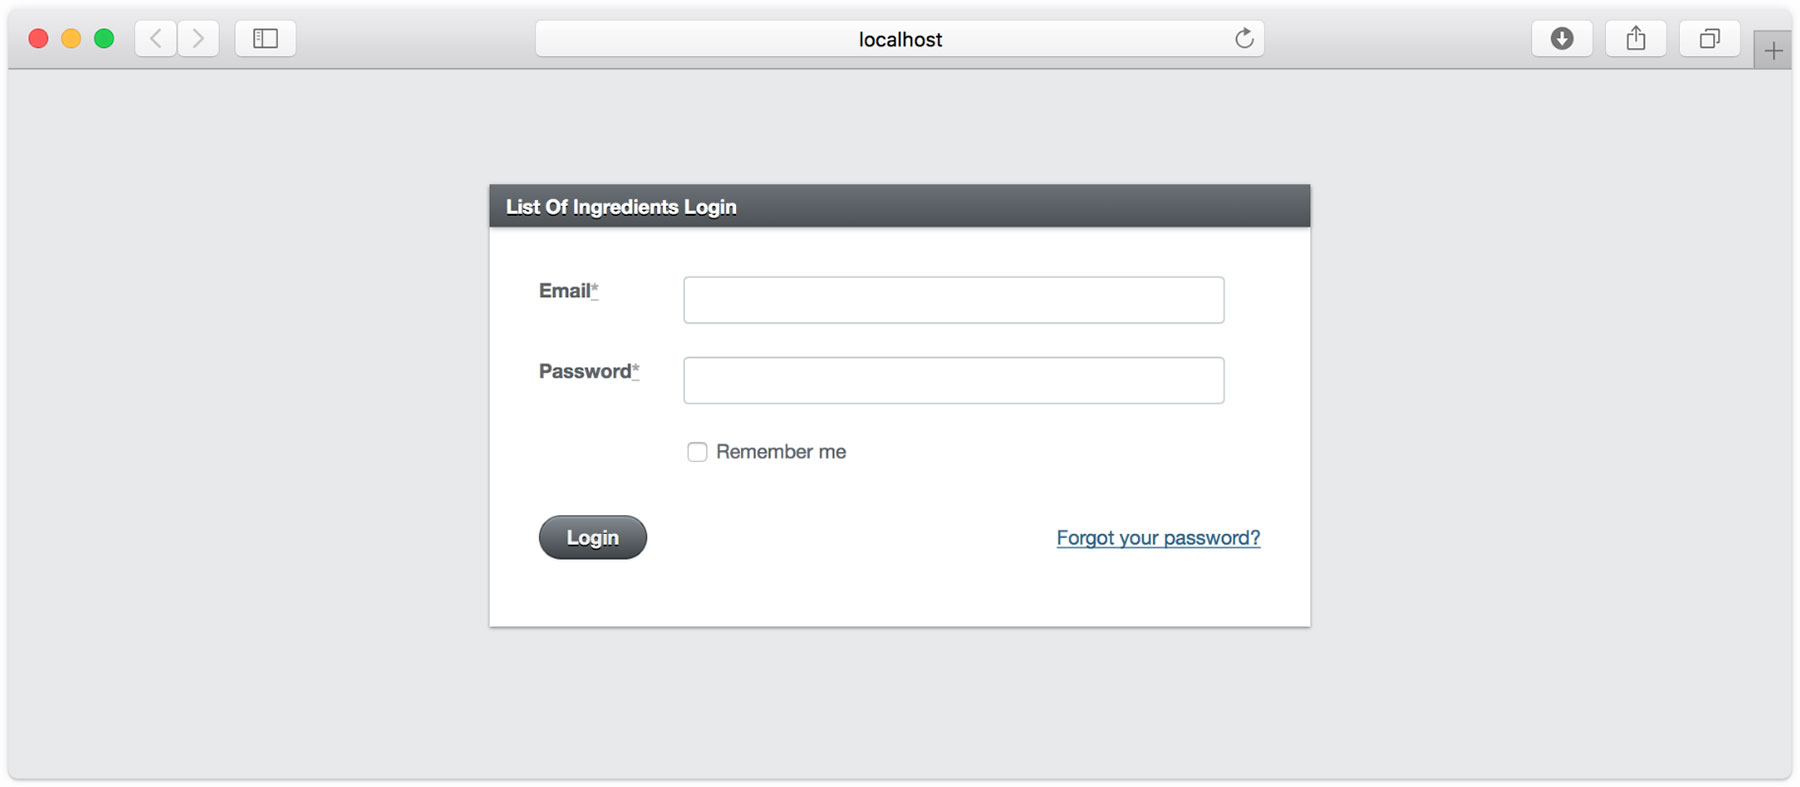 The ActiveAdmin login page